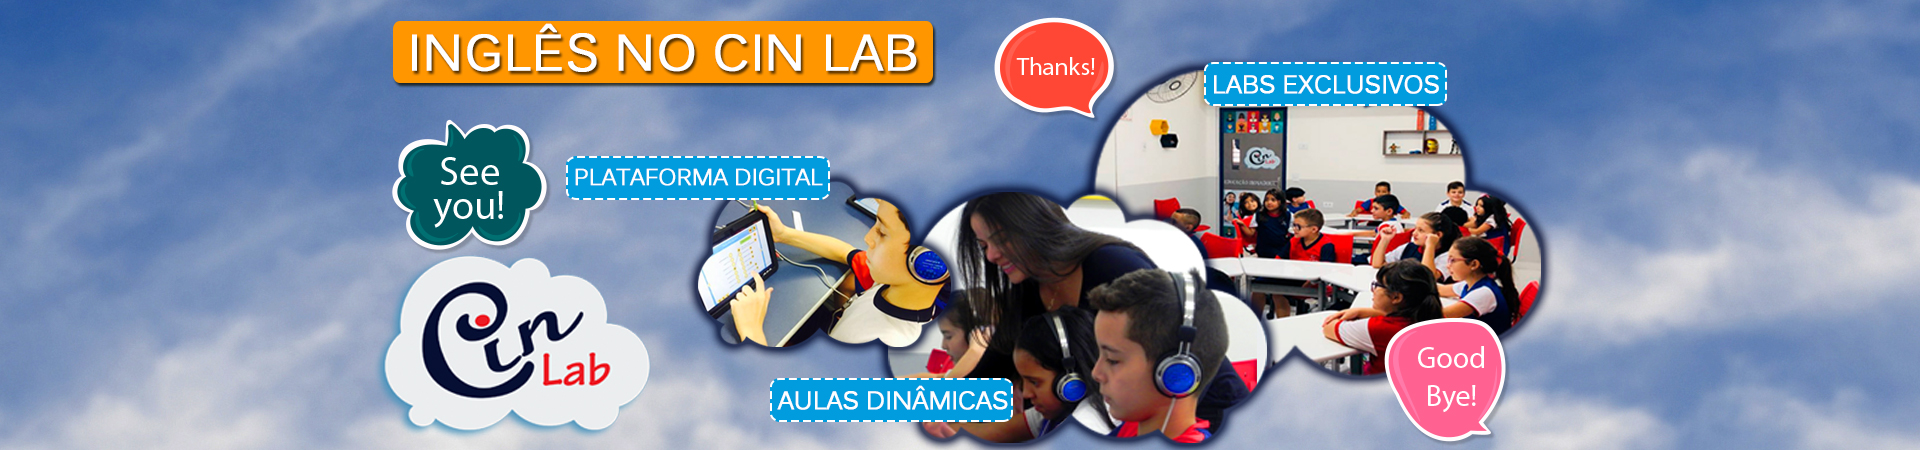 slide-ingles-cinlab-full-1